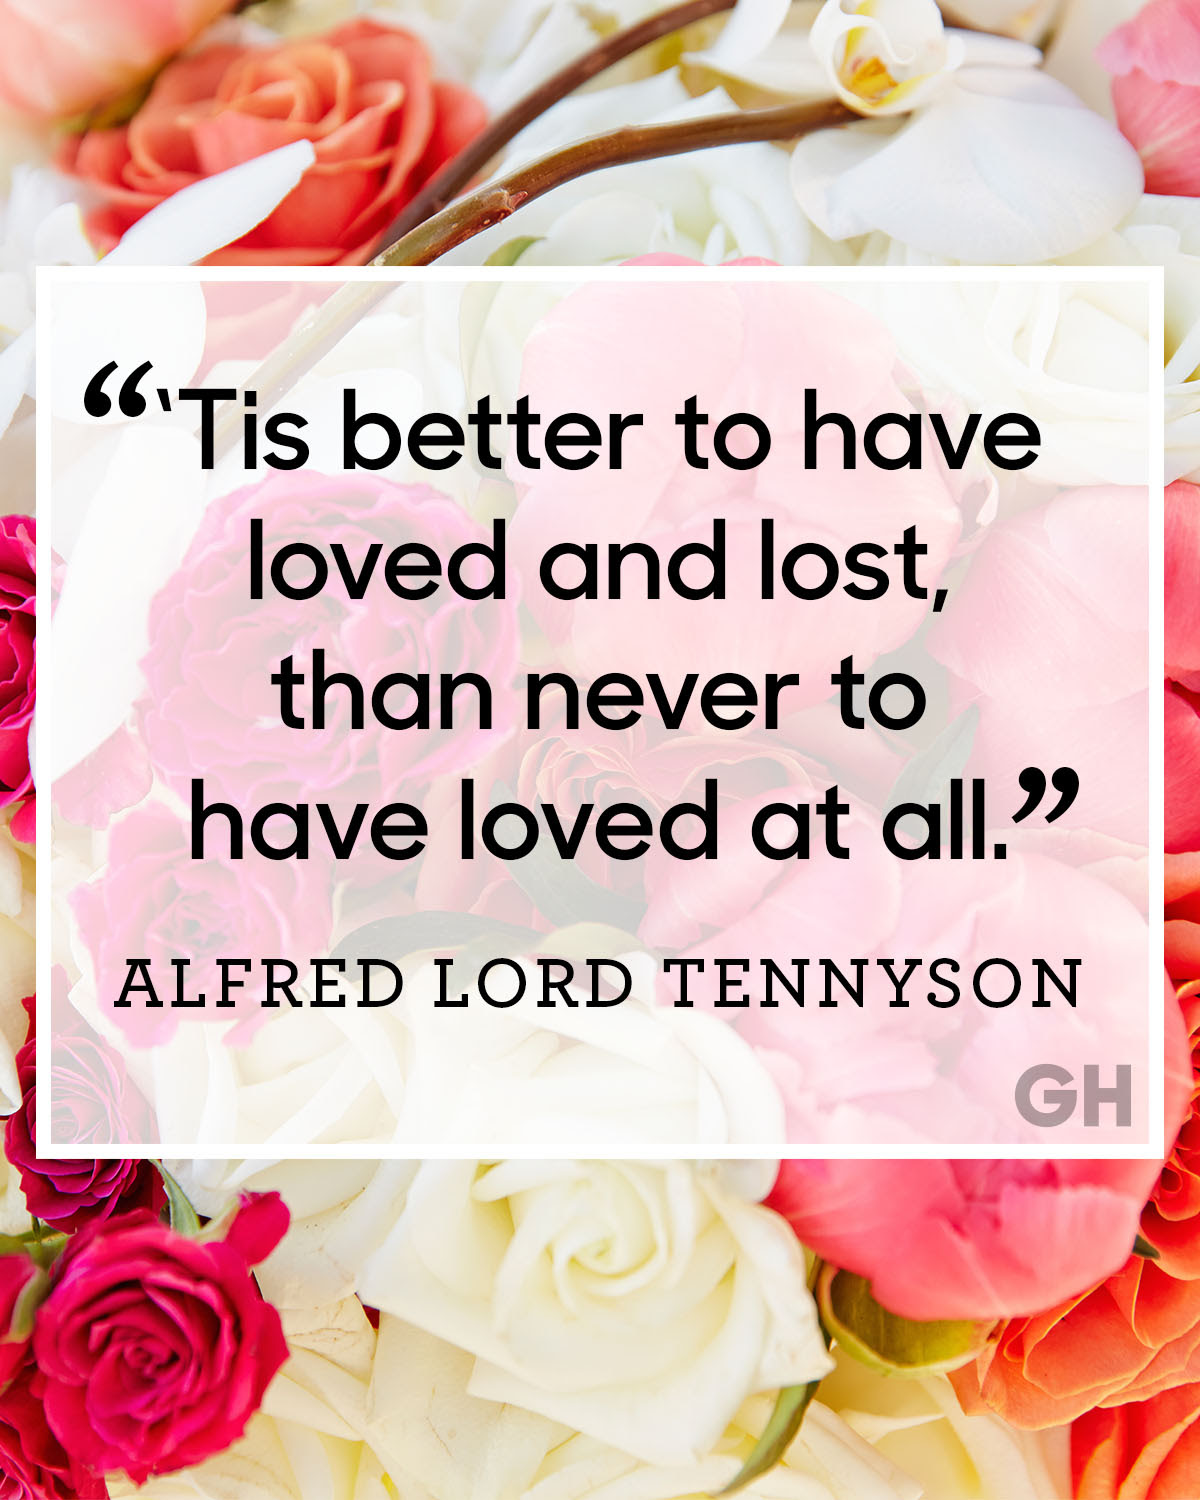 gh quotes 0013 tennyson copy